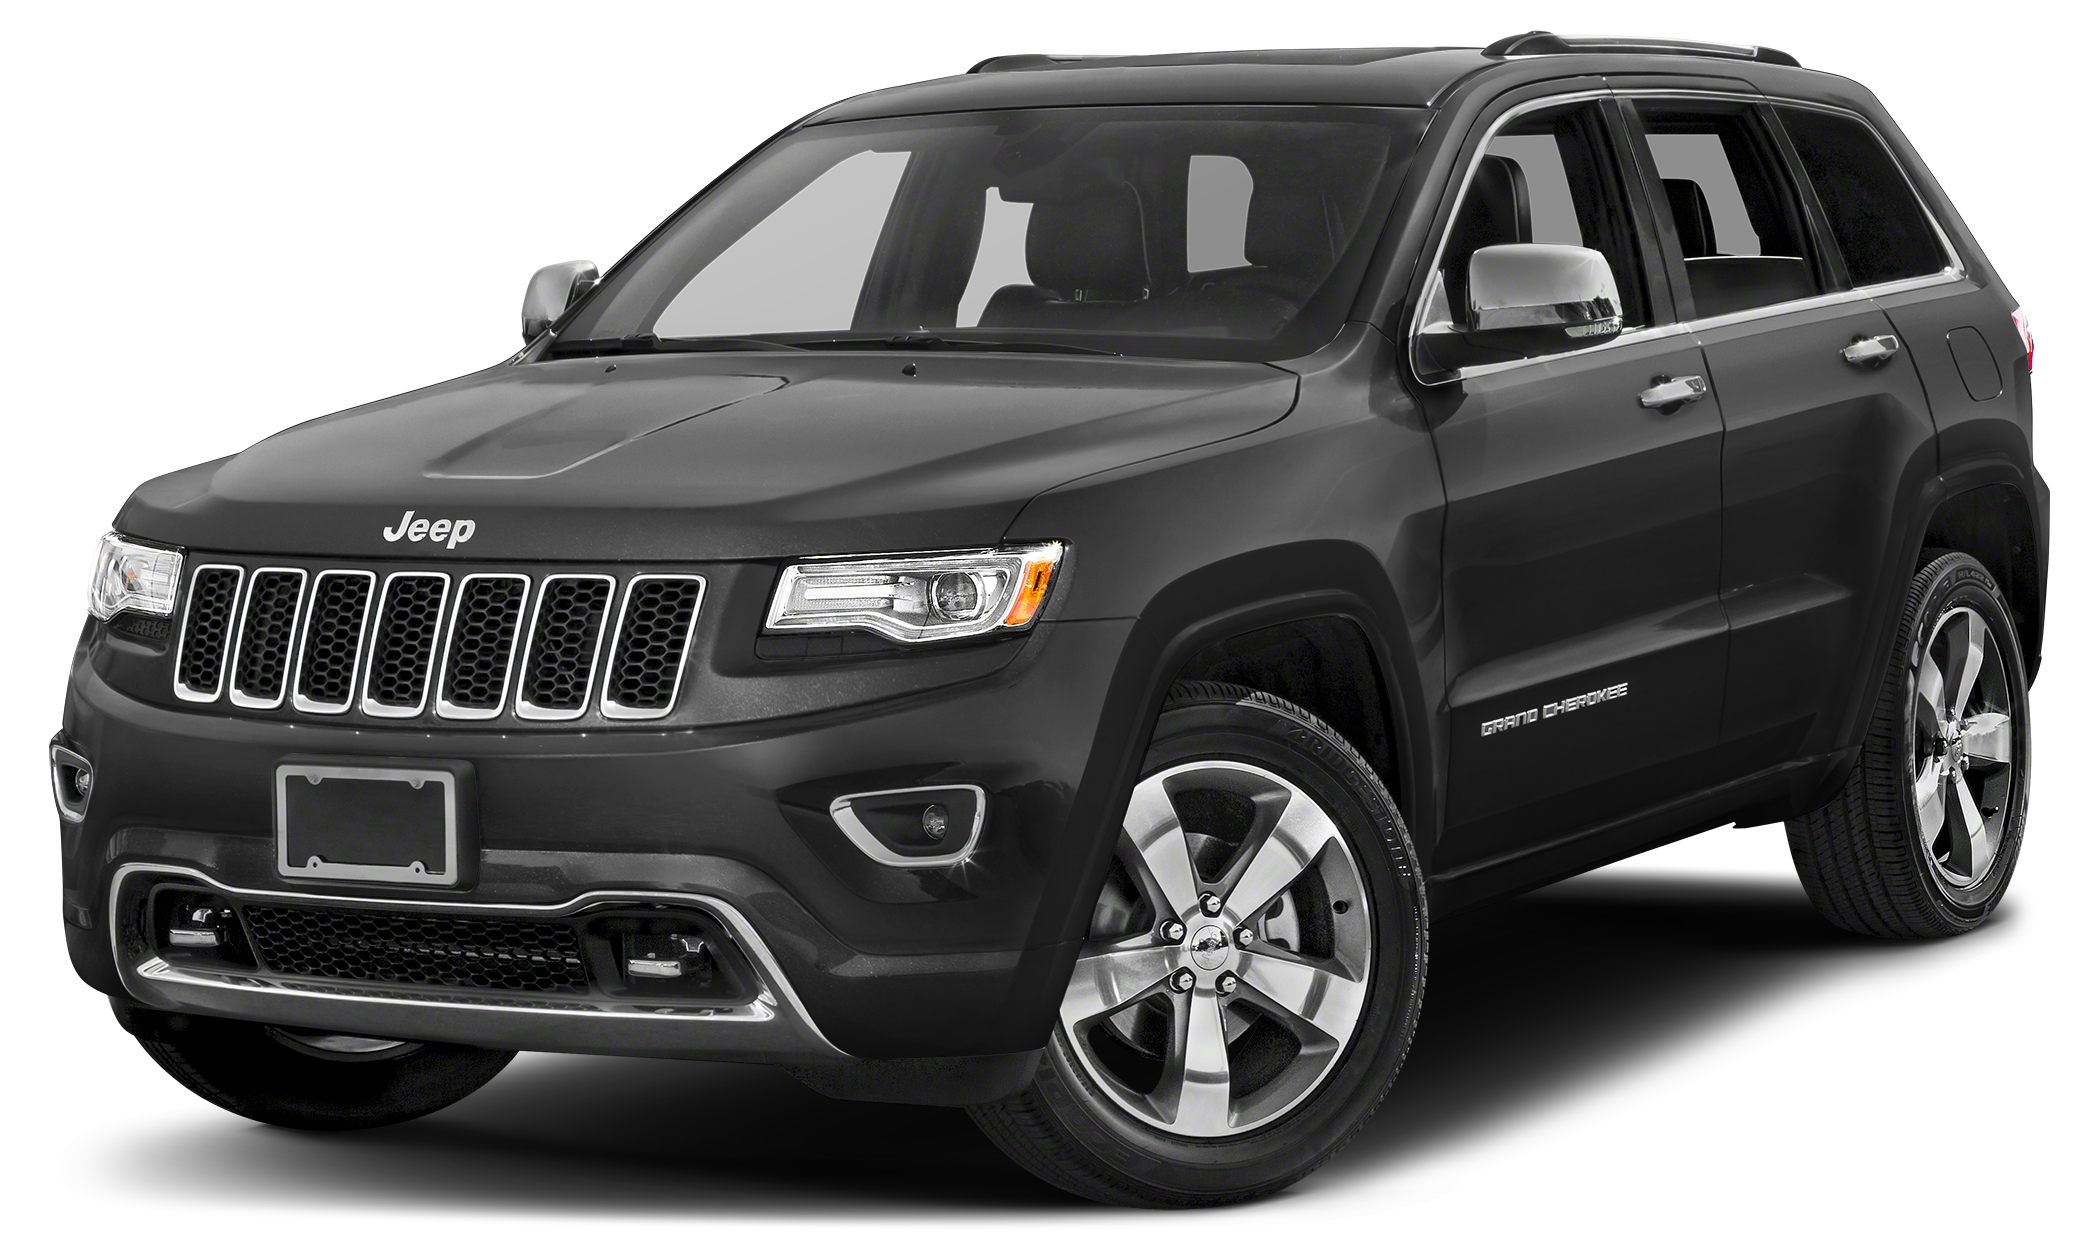 2017 Jeep Grand Cherokee Overland Navigation 4WD Fresh arrival More pictures coming soon Tired